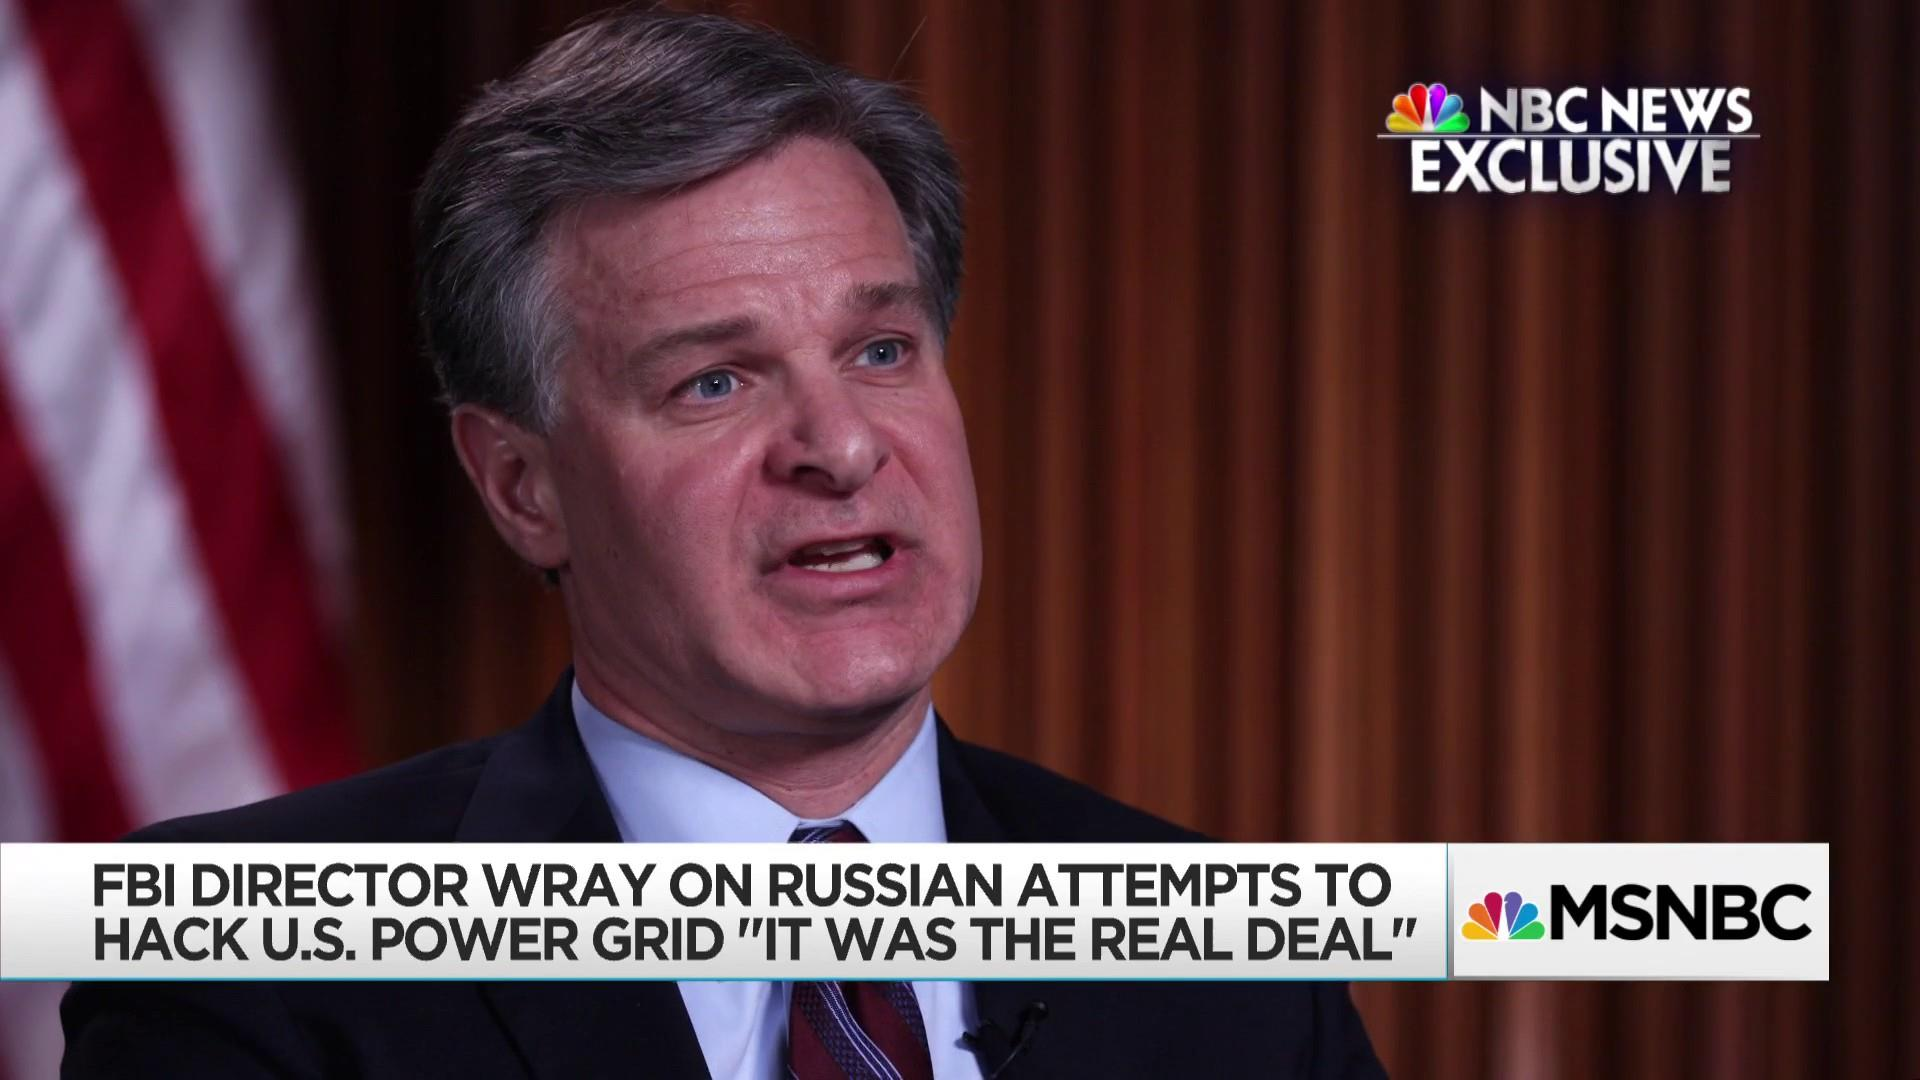 No mention of Russia hacks of US power plants in Trump Putin chat